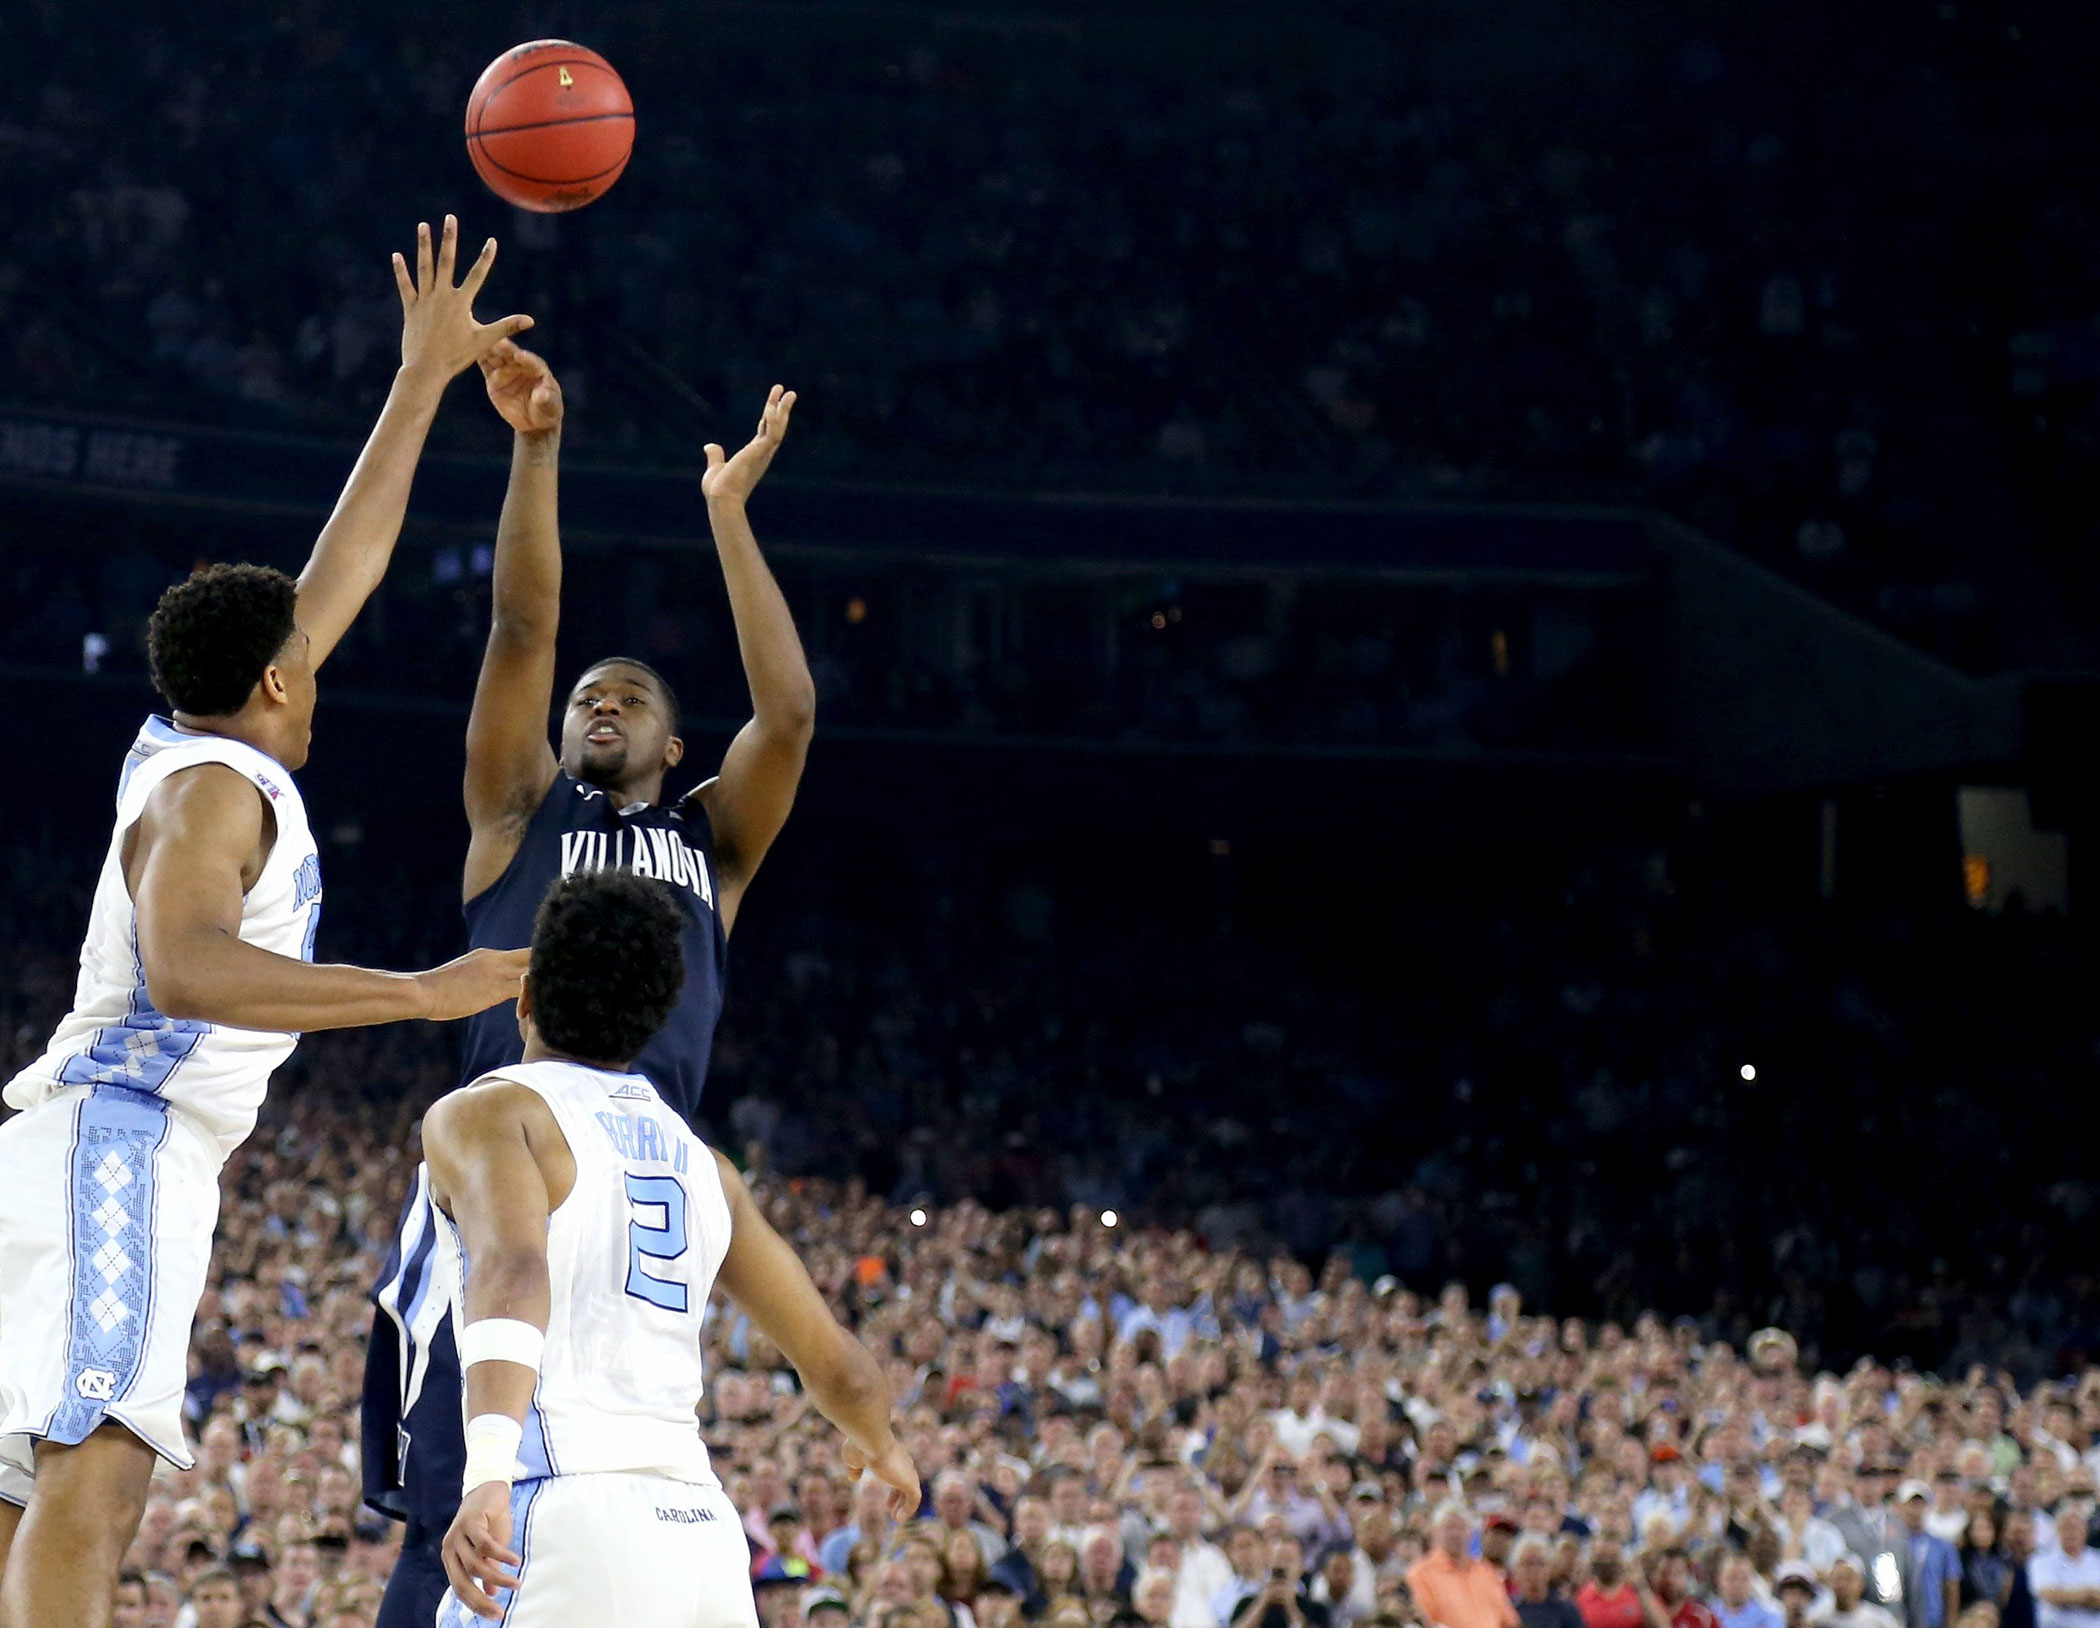 Villanova Wildcats' Kris Jenkins (2) shoots the game-winning three pointer to defeat the North Carolina Tar Heels 77-74 in the NCAA college basketball National Championship  game on April 4, 2016 in Houston.